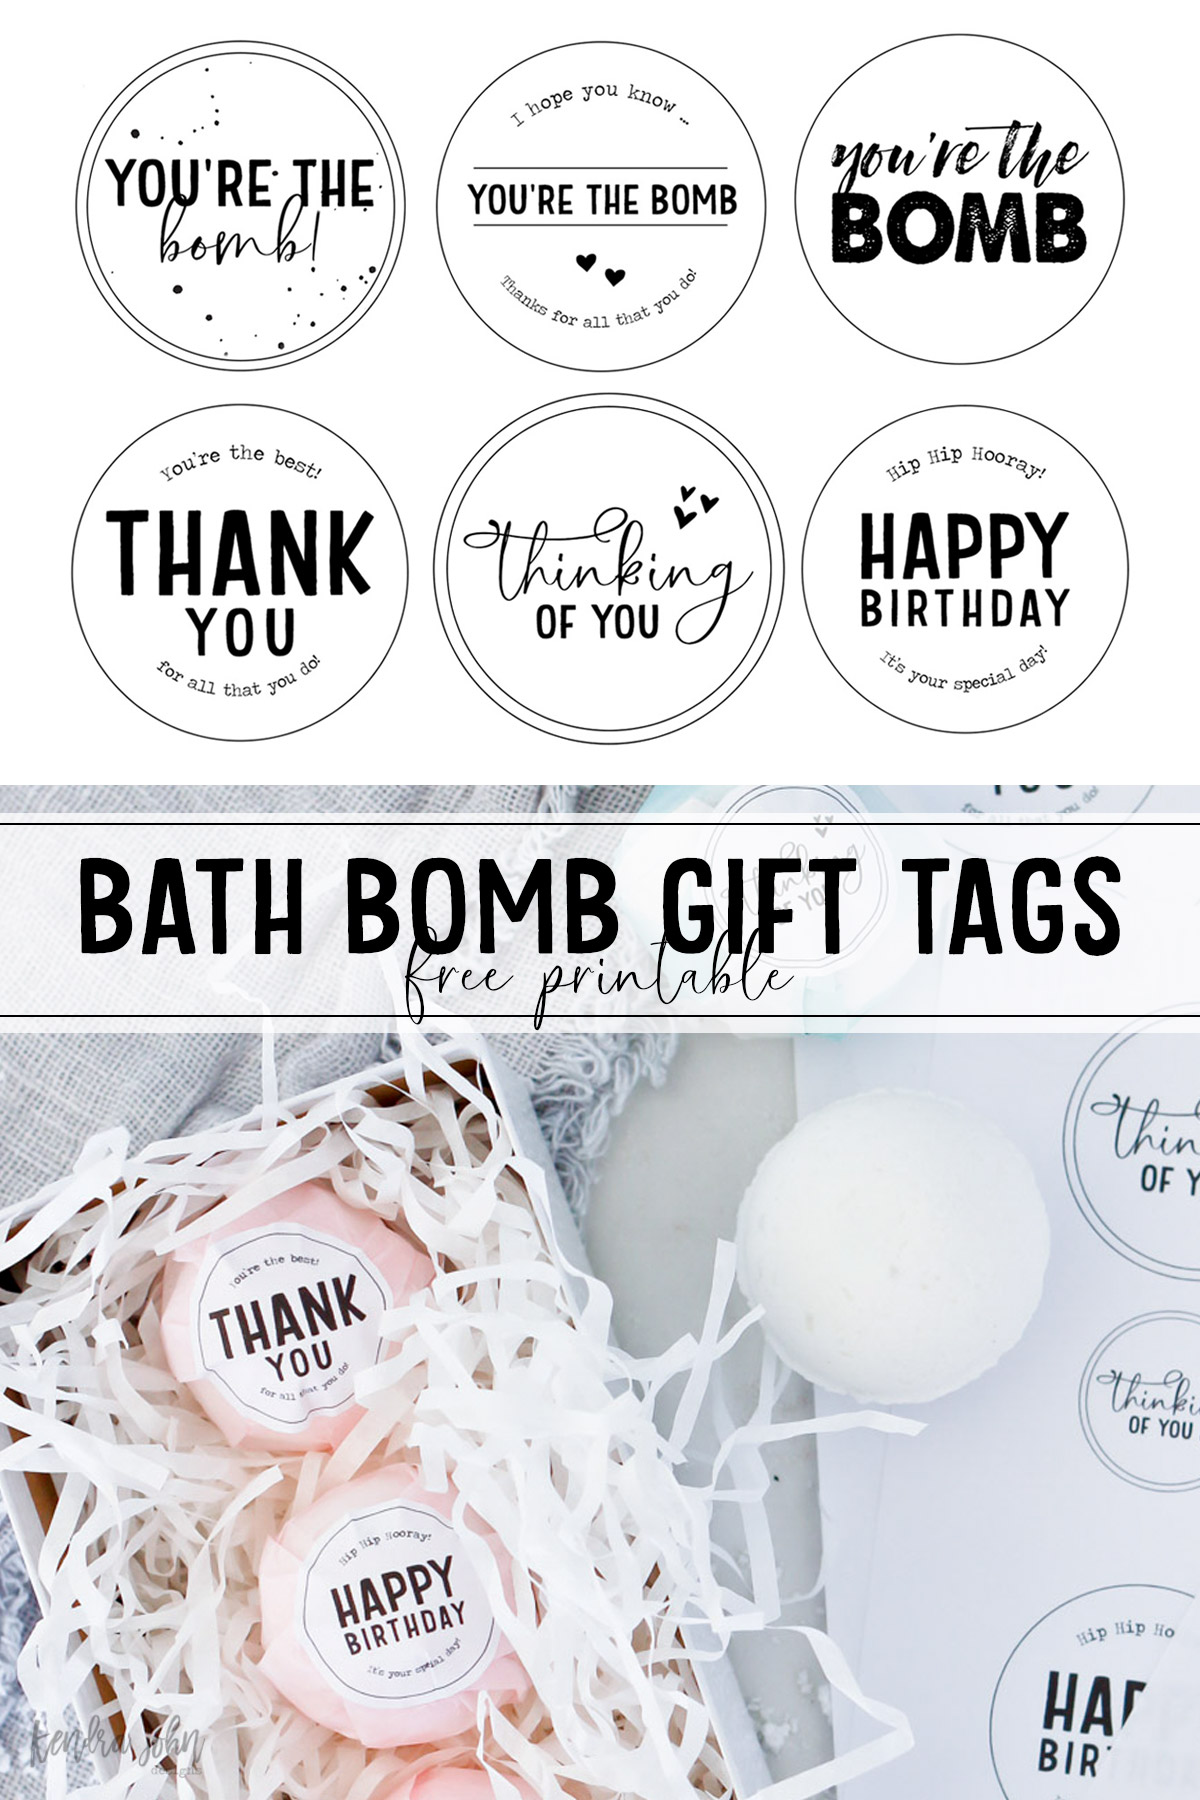 Bath Bomb Gift Tags to be used on homemade bath bombs